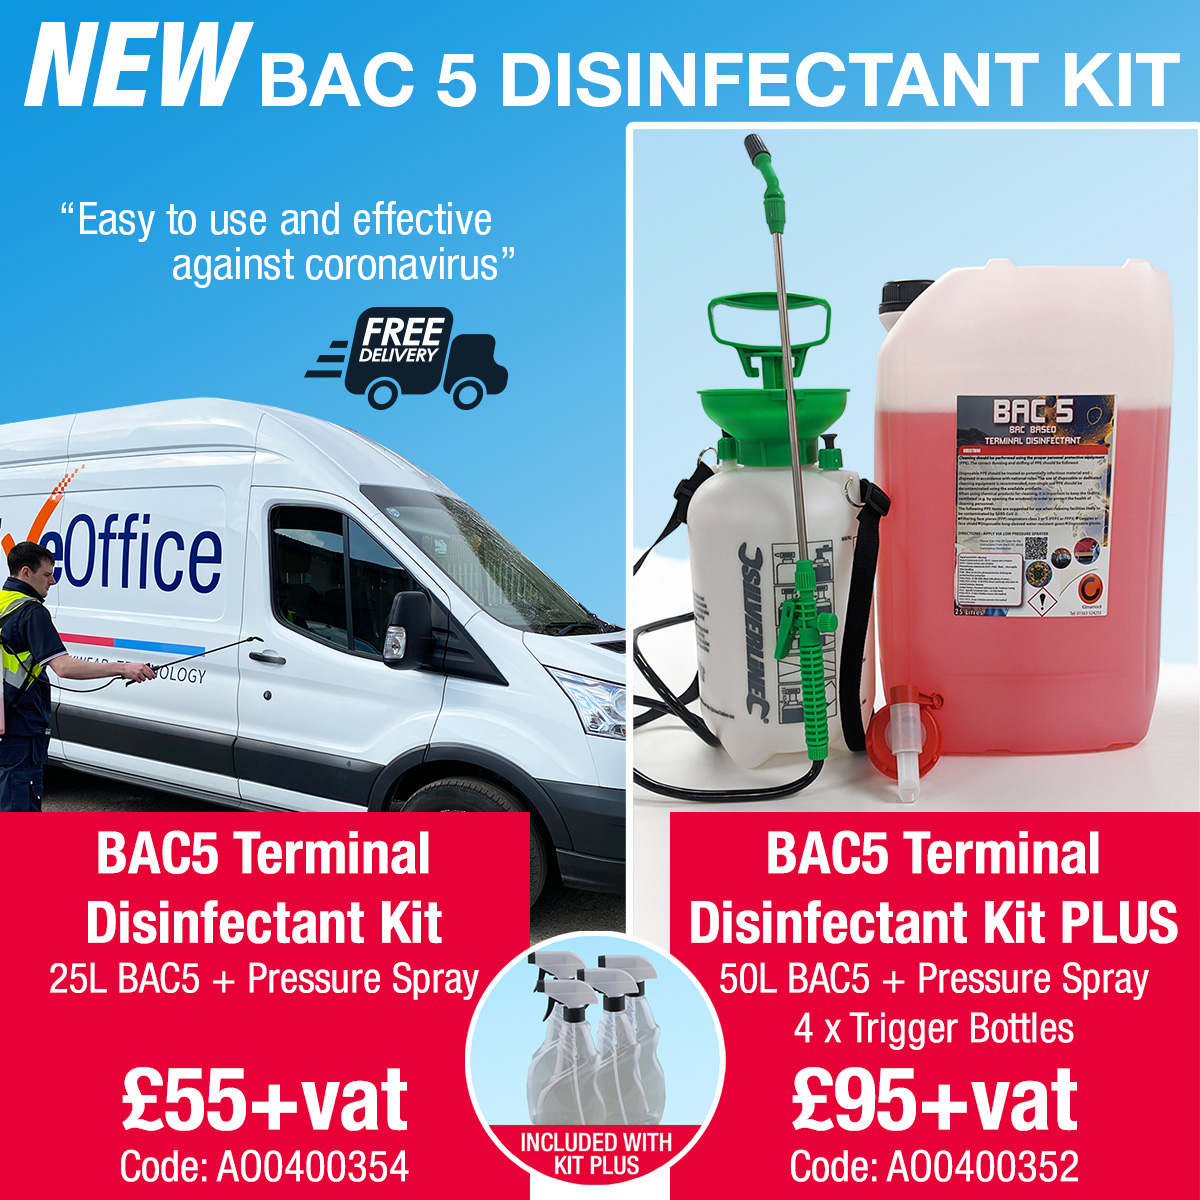 BAC5 disinfectant